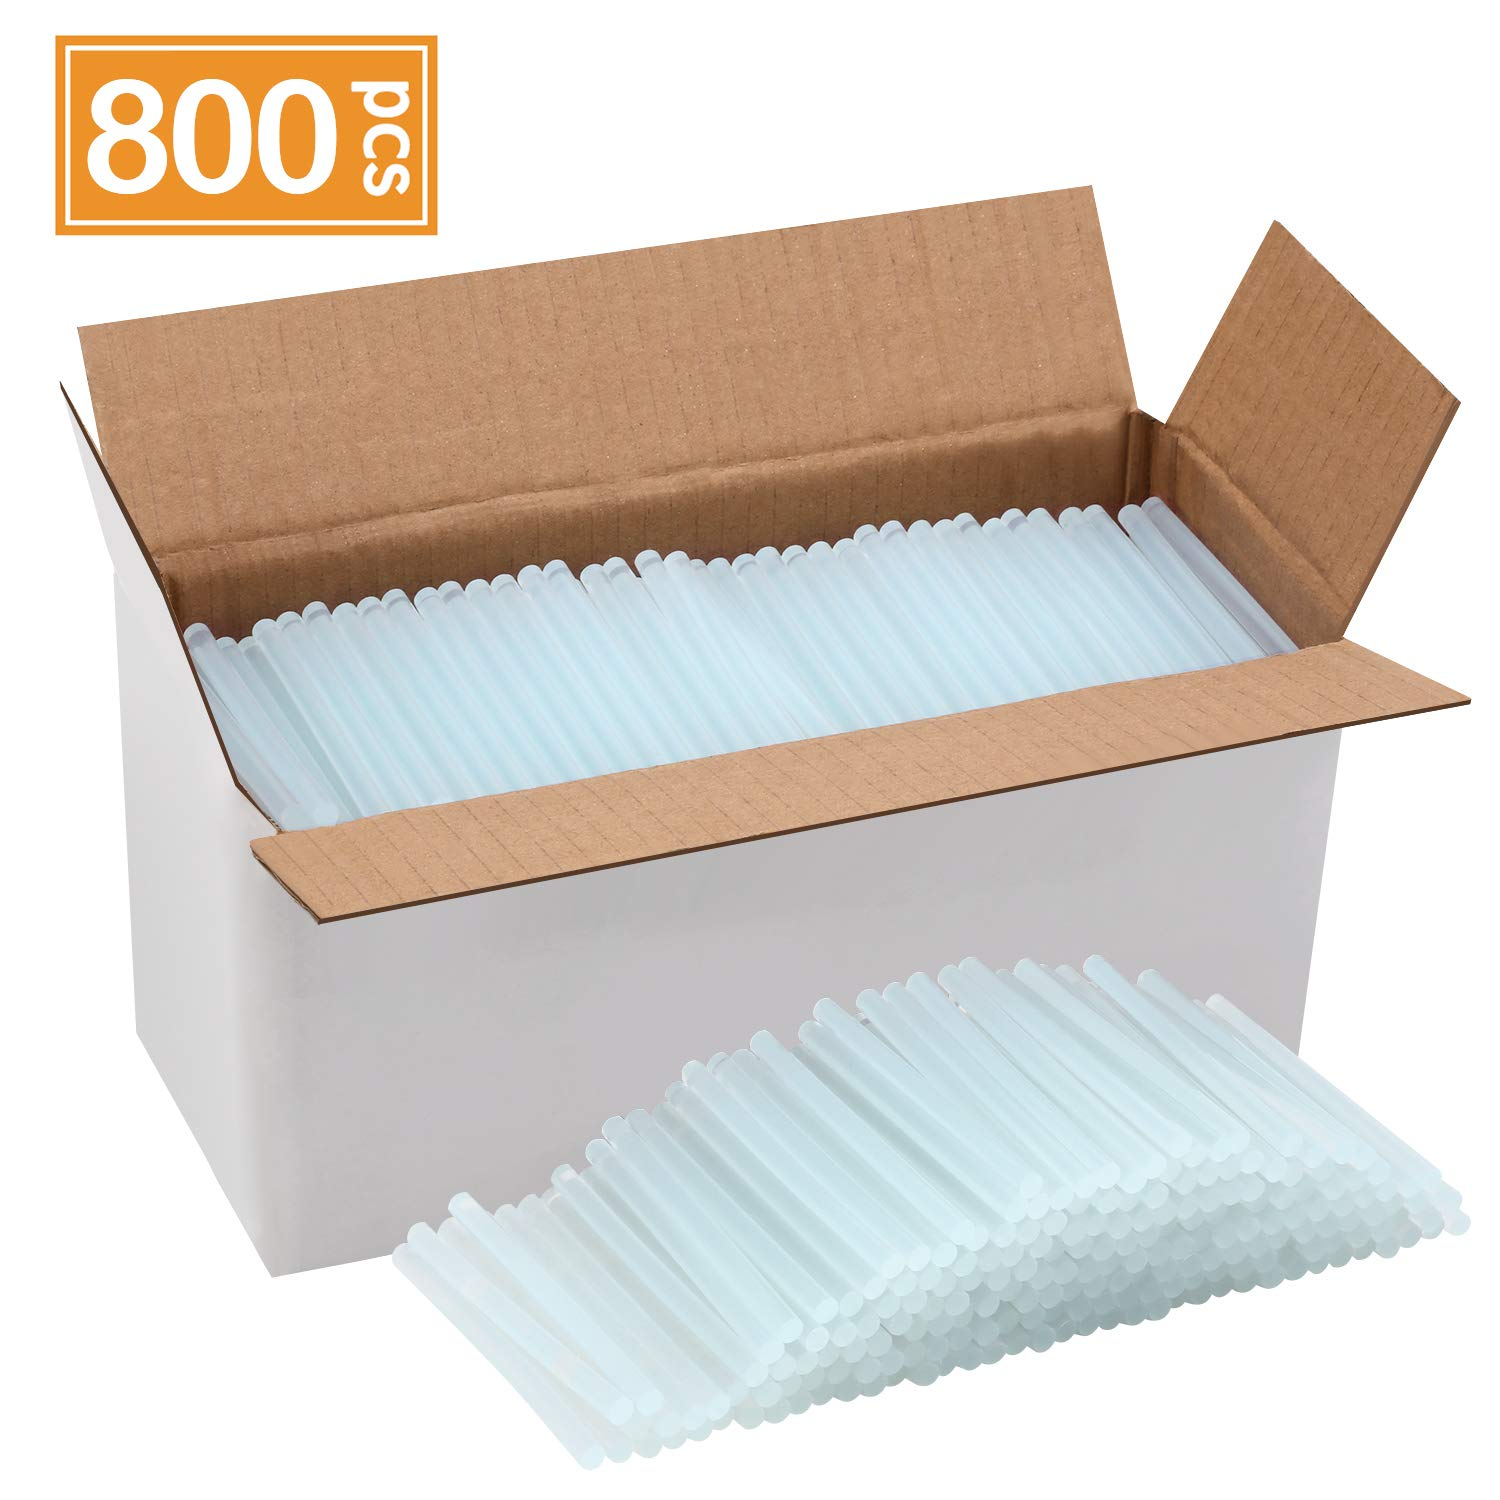 Magicfly Hot Glue Gun Sticks, Huge Pack of 800, 4 Inch Long and 0.27 Inch Diameter Mini Hot Melt Glue Sticks, Compatible with Most Glue Guns, for DIY Craft Projects and Sealing